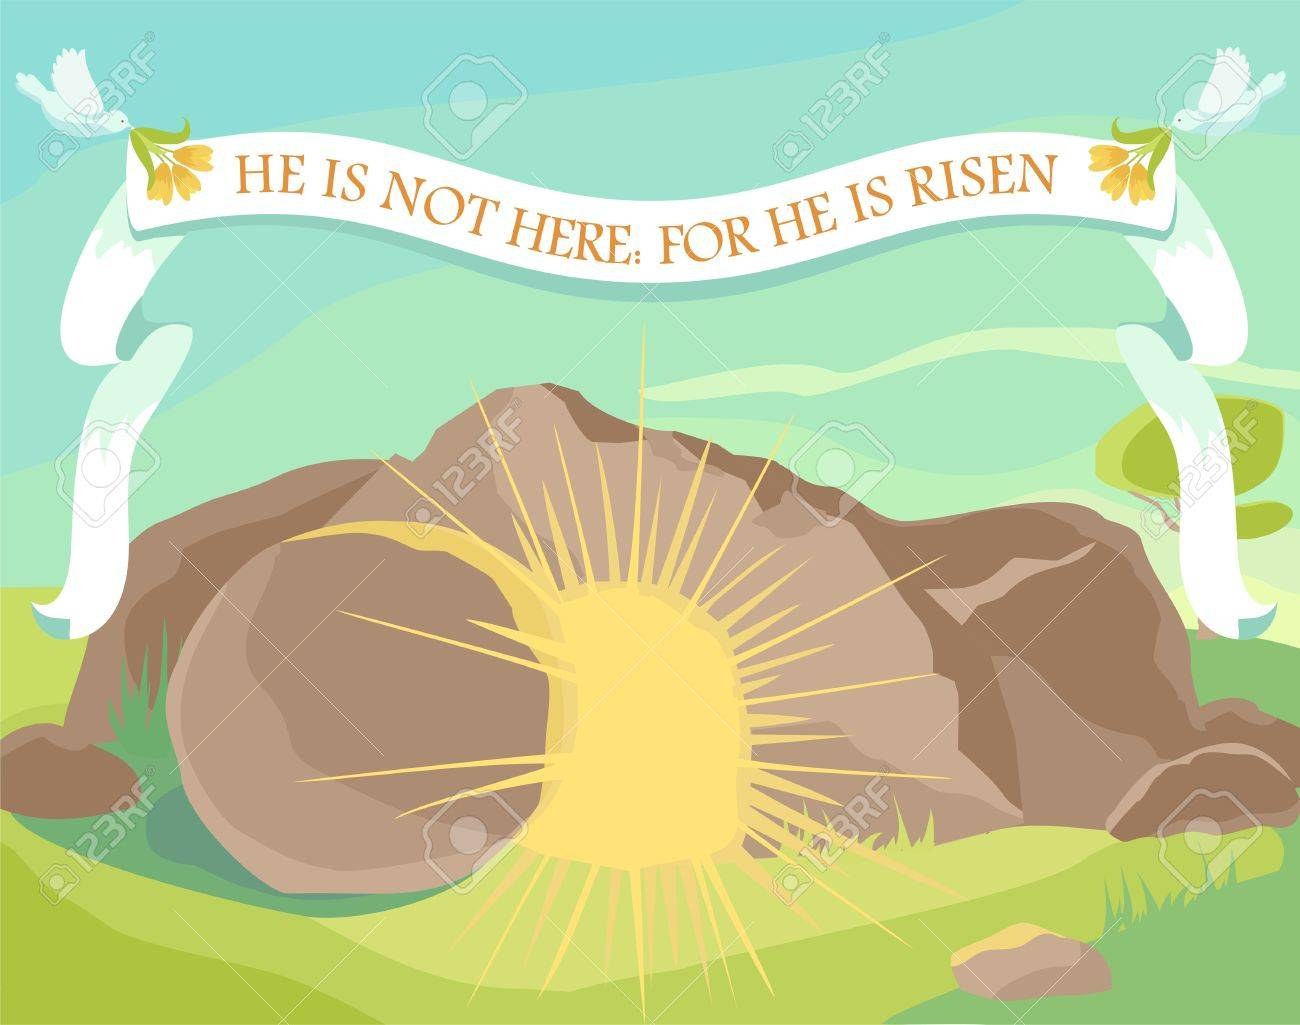 Easter Illustration Of Opened Cave With Light Inside. White Ribbon With  Text: He Is